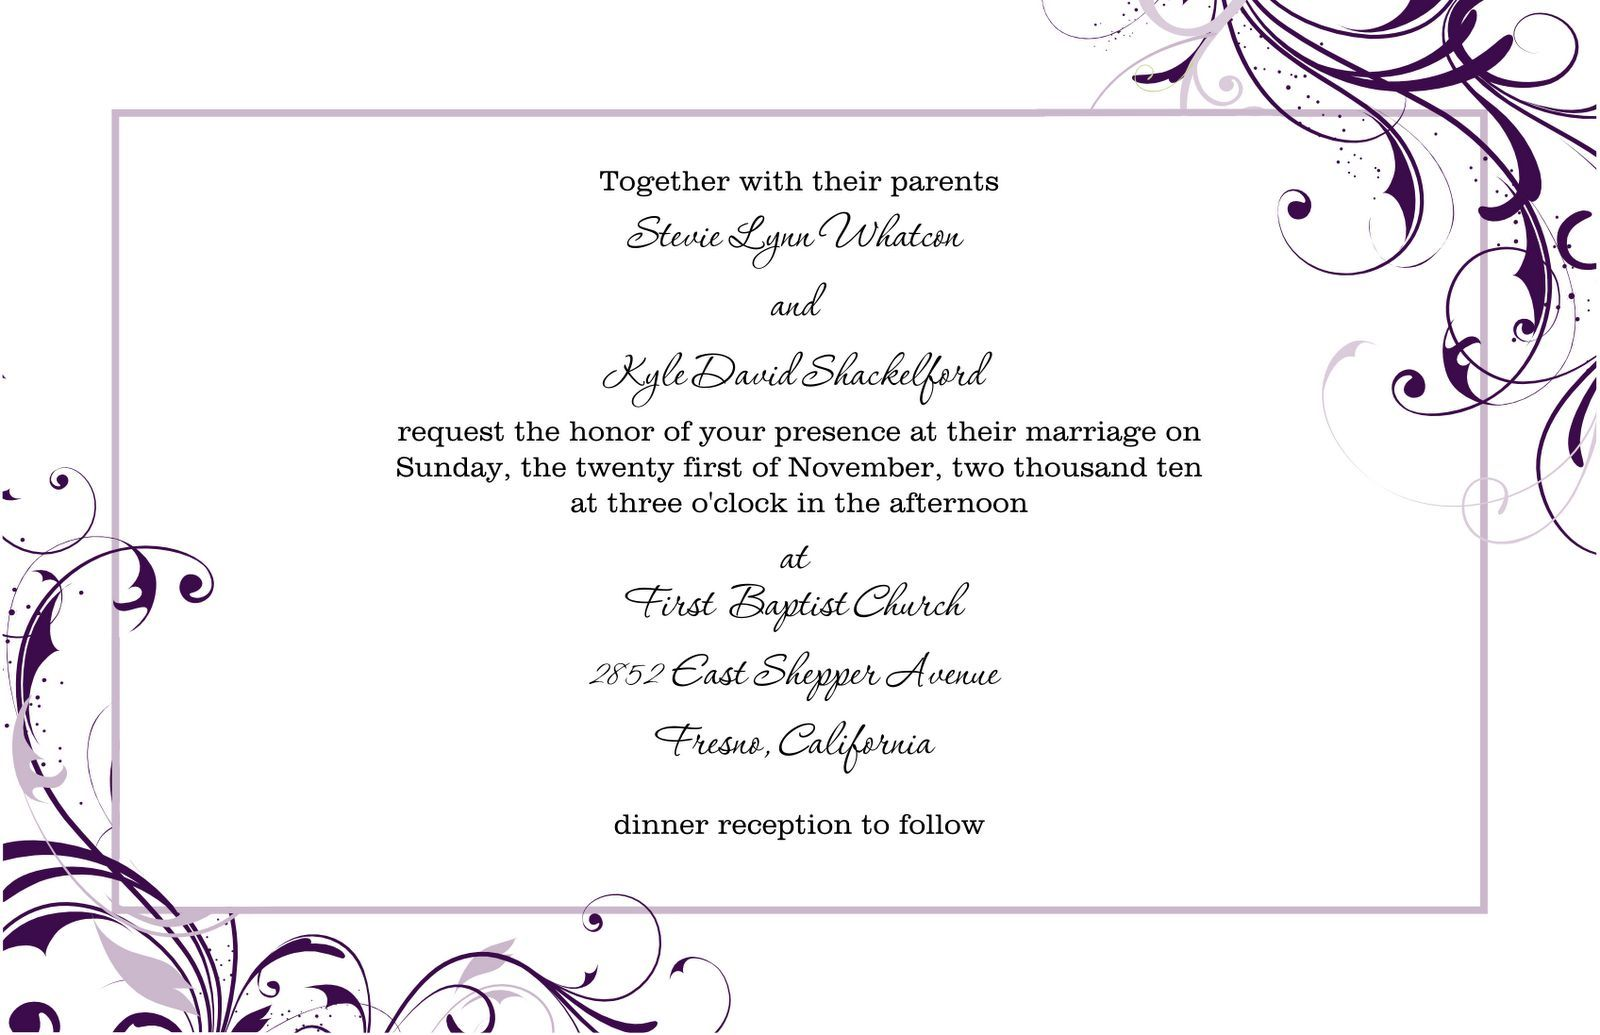 Free blank wedding invitation templates for microsoft word wedding free blank wedding invitation templates for microsoft word stopboris